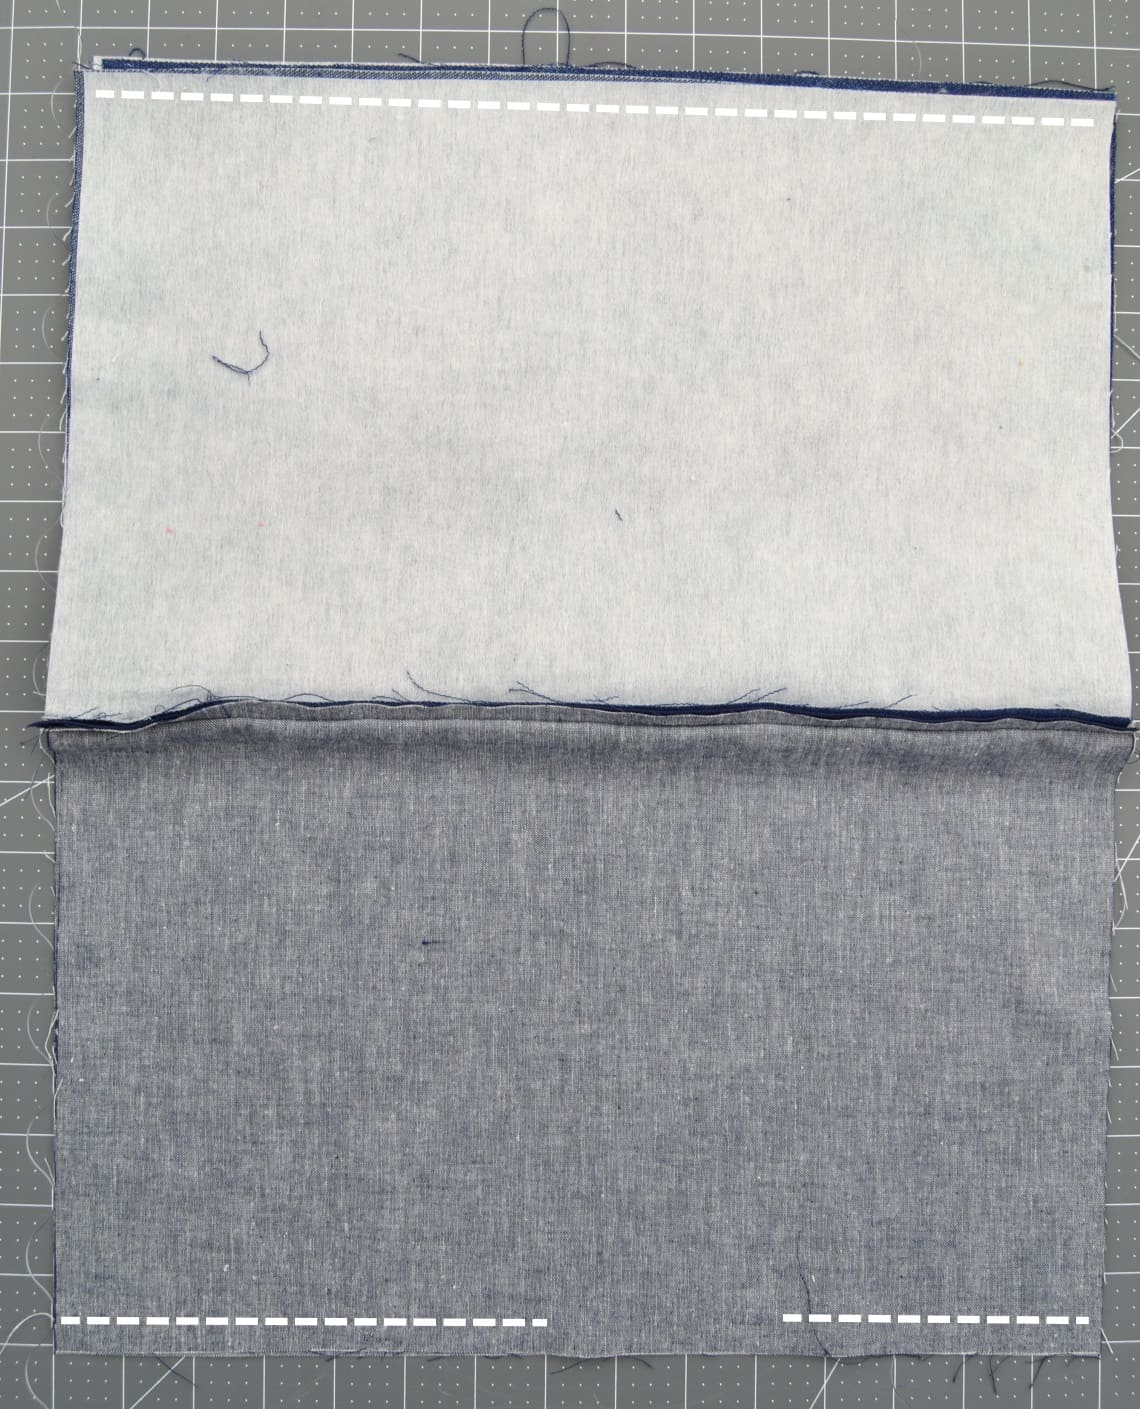 lines showing to sew along top and bottom but a gap left in bottom